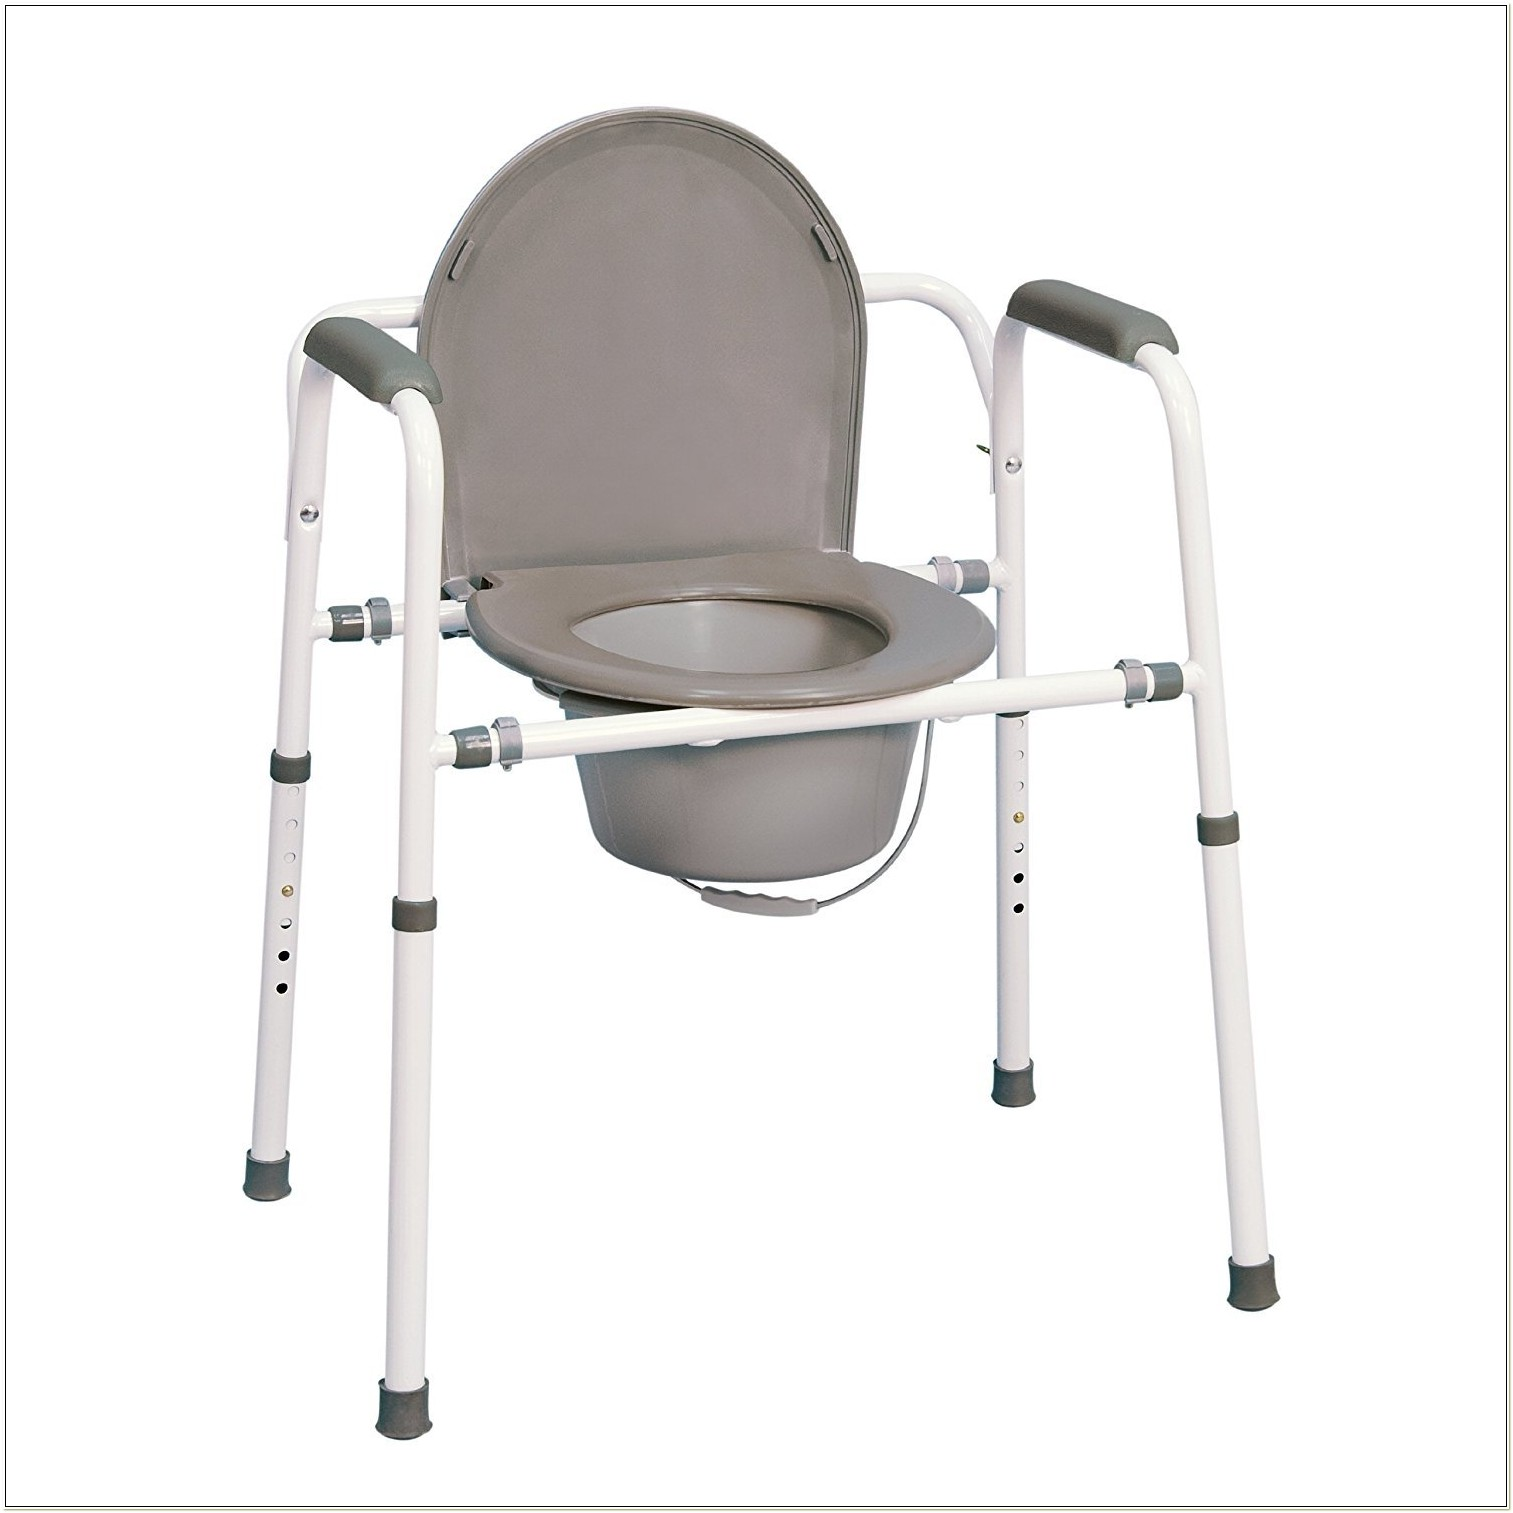 Potty Chairs For Adults